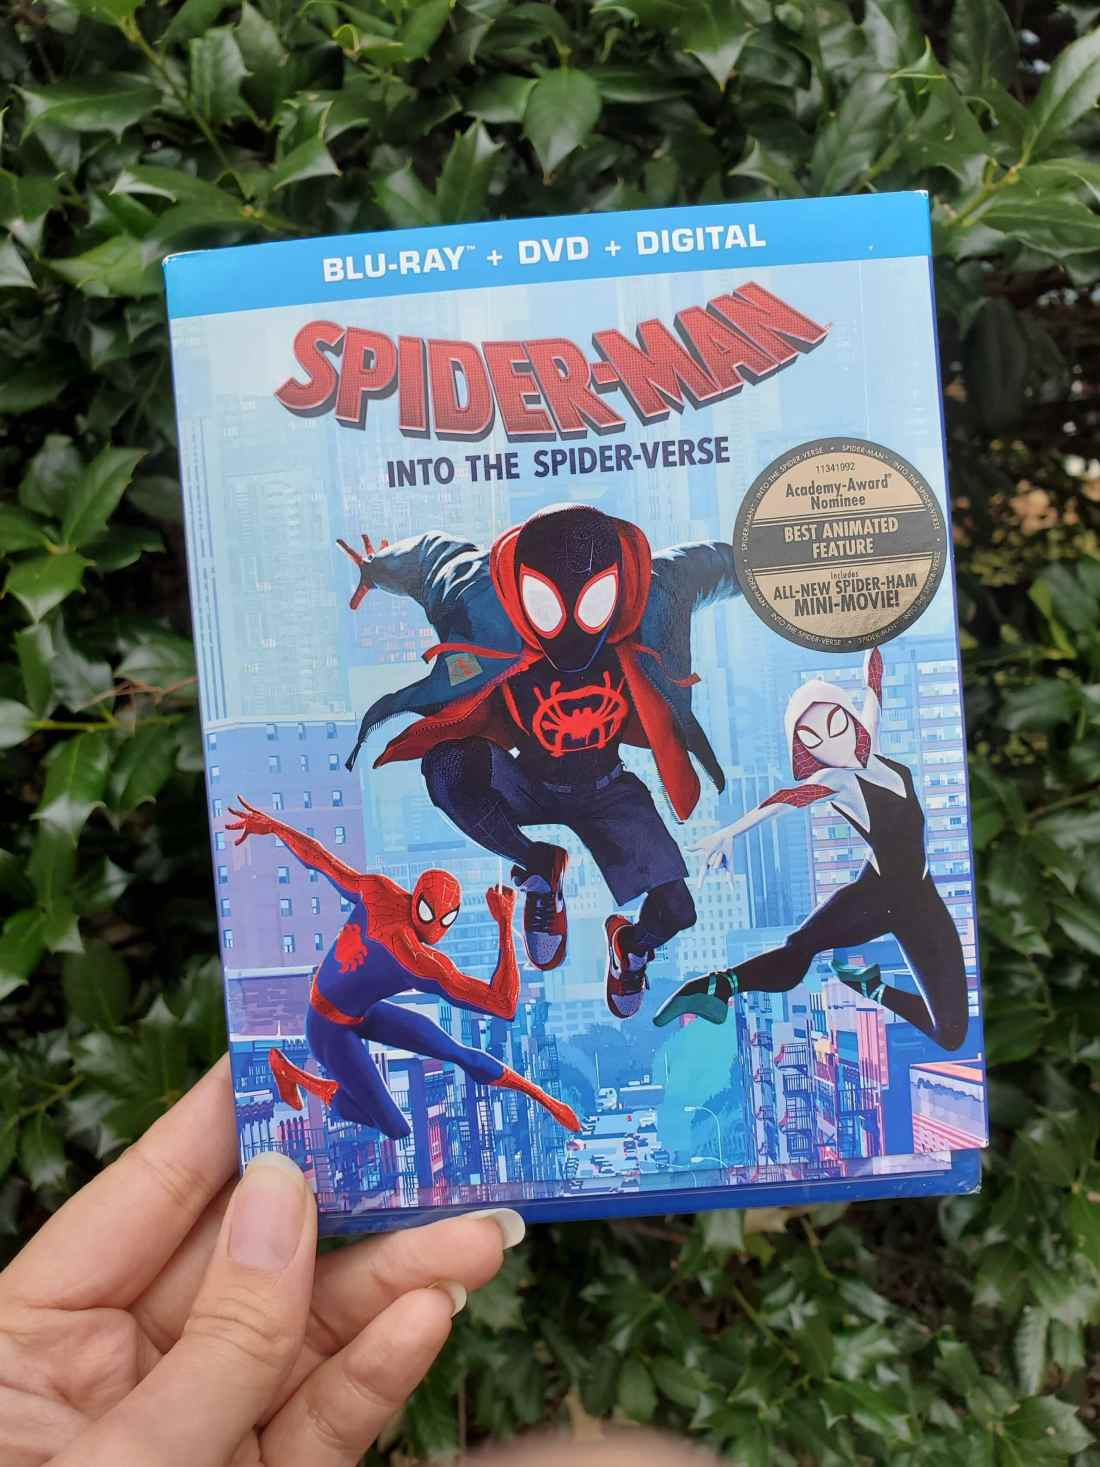 SPIDER-MAN: INTO THE SPIDER-VERSE DVD Front Cover. Learn all about the SPIDER-MAN: INTO THE SPIDER-VERSE film as well as snag a DIY Paper Foldables PDF for more fun with the family! SPIDER-MAN: INTO THE SPIDER-VERSE is availble on 4K, Bluray, and DVD today!